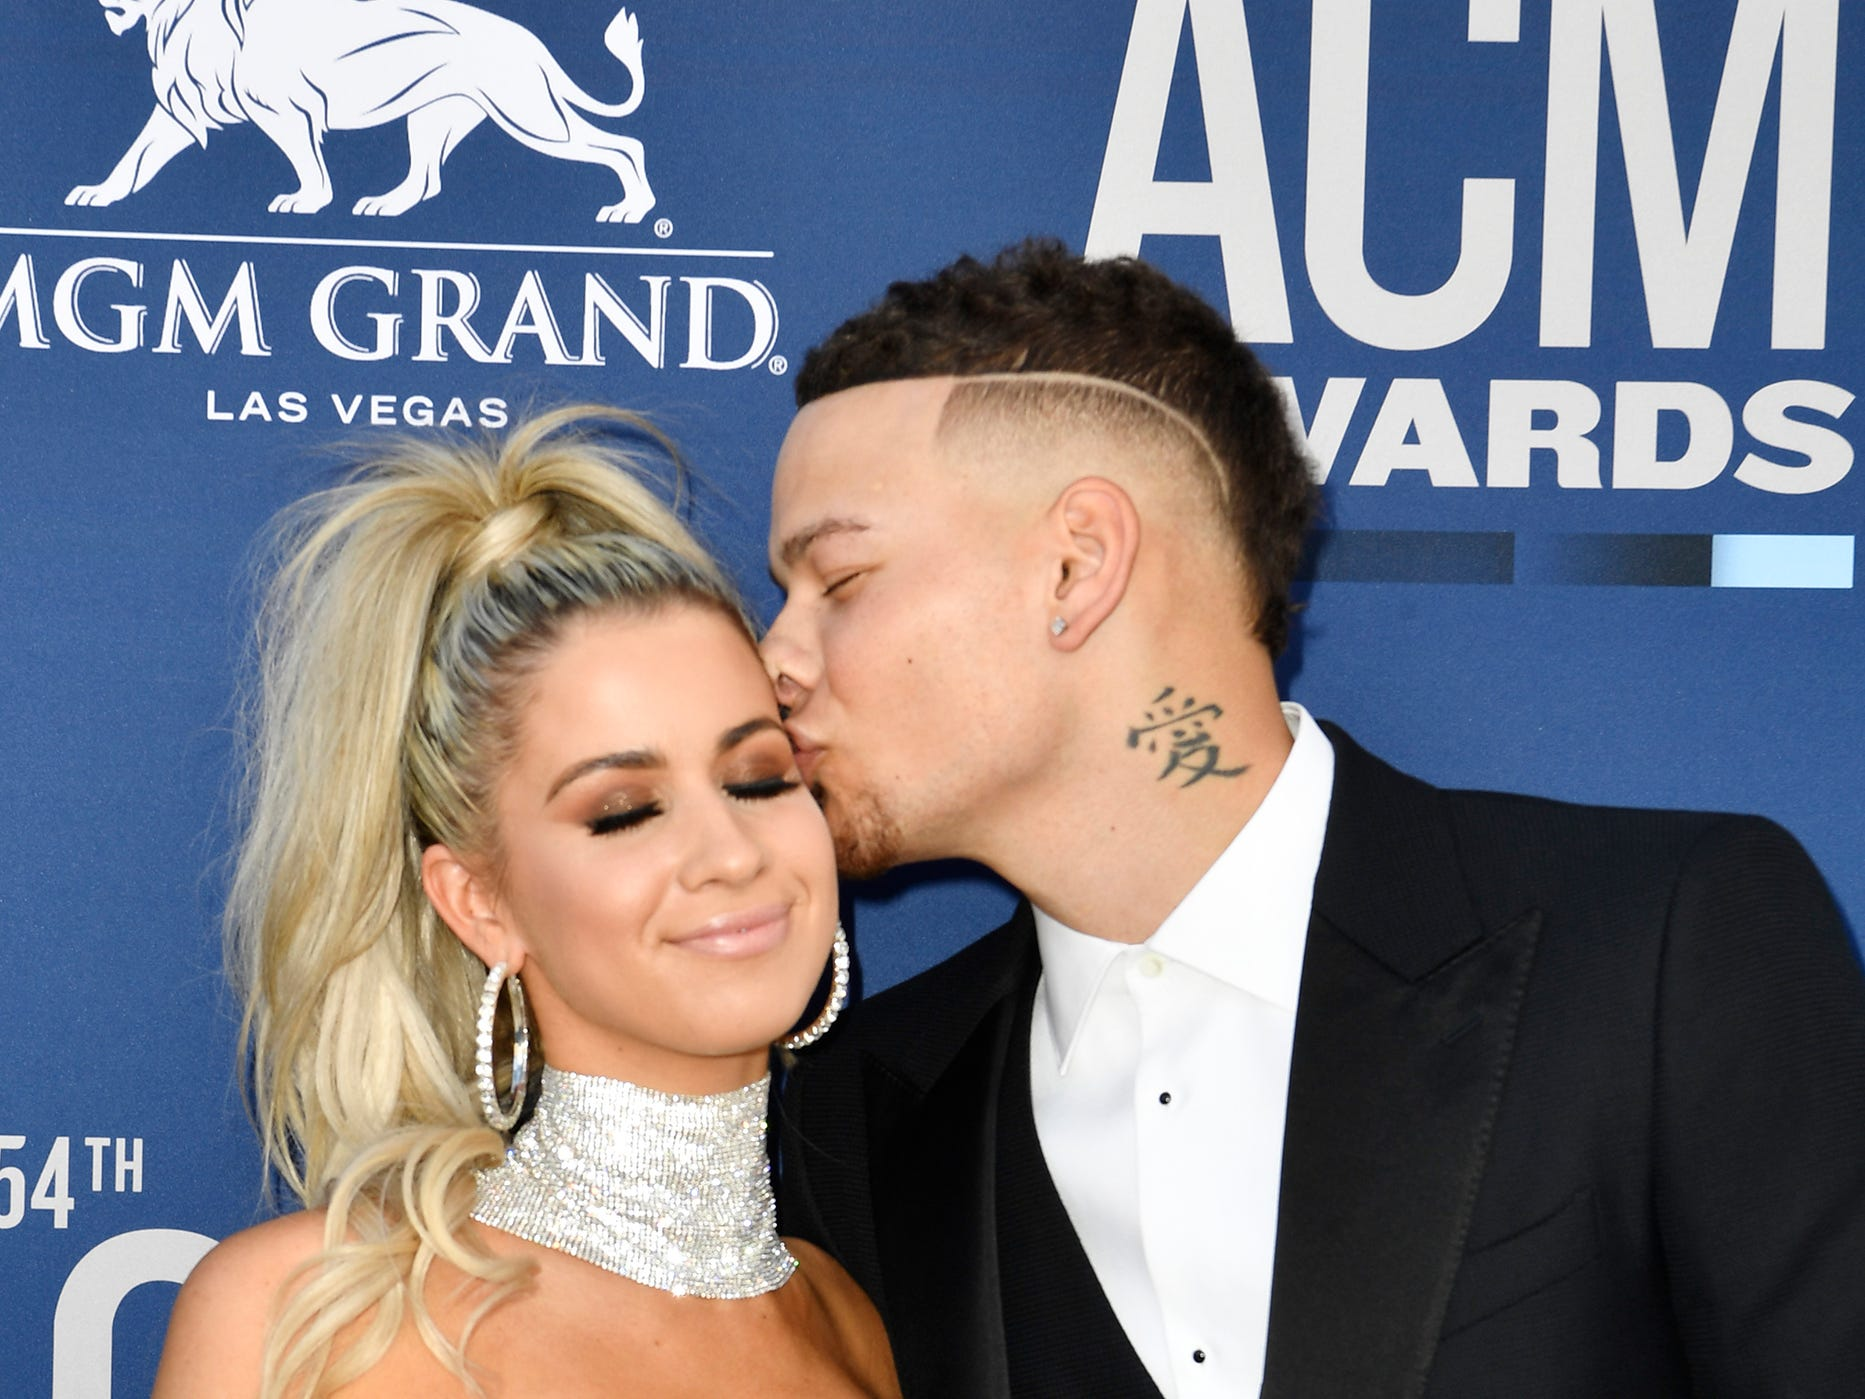 Kane Brown, right, and wife Katelyn Brown, walk the red carpet at the 54TH Academy of Country Music Awards Sunday, April 7, 2019, in Las Vegas, Nev.